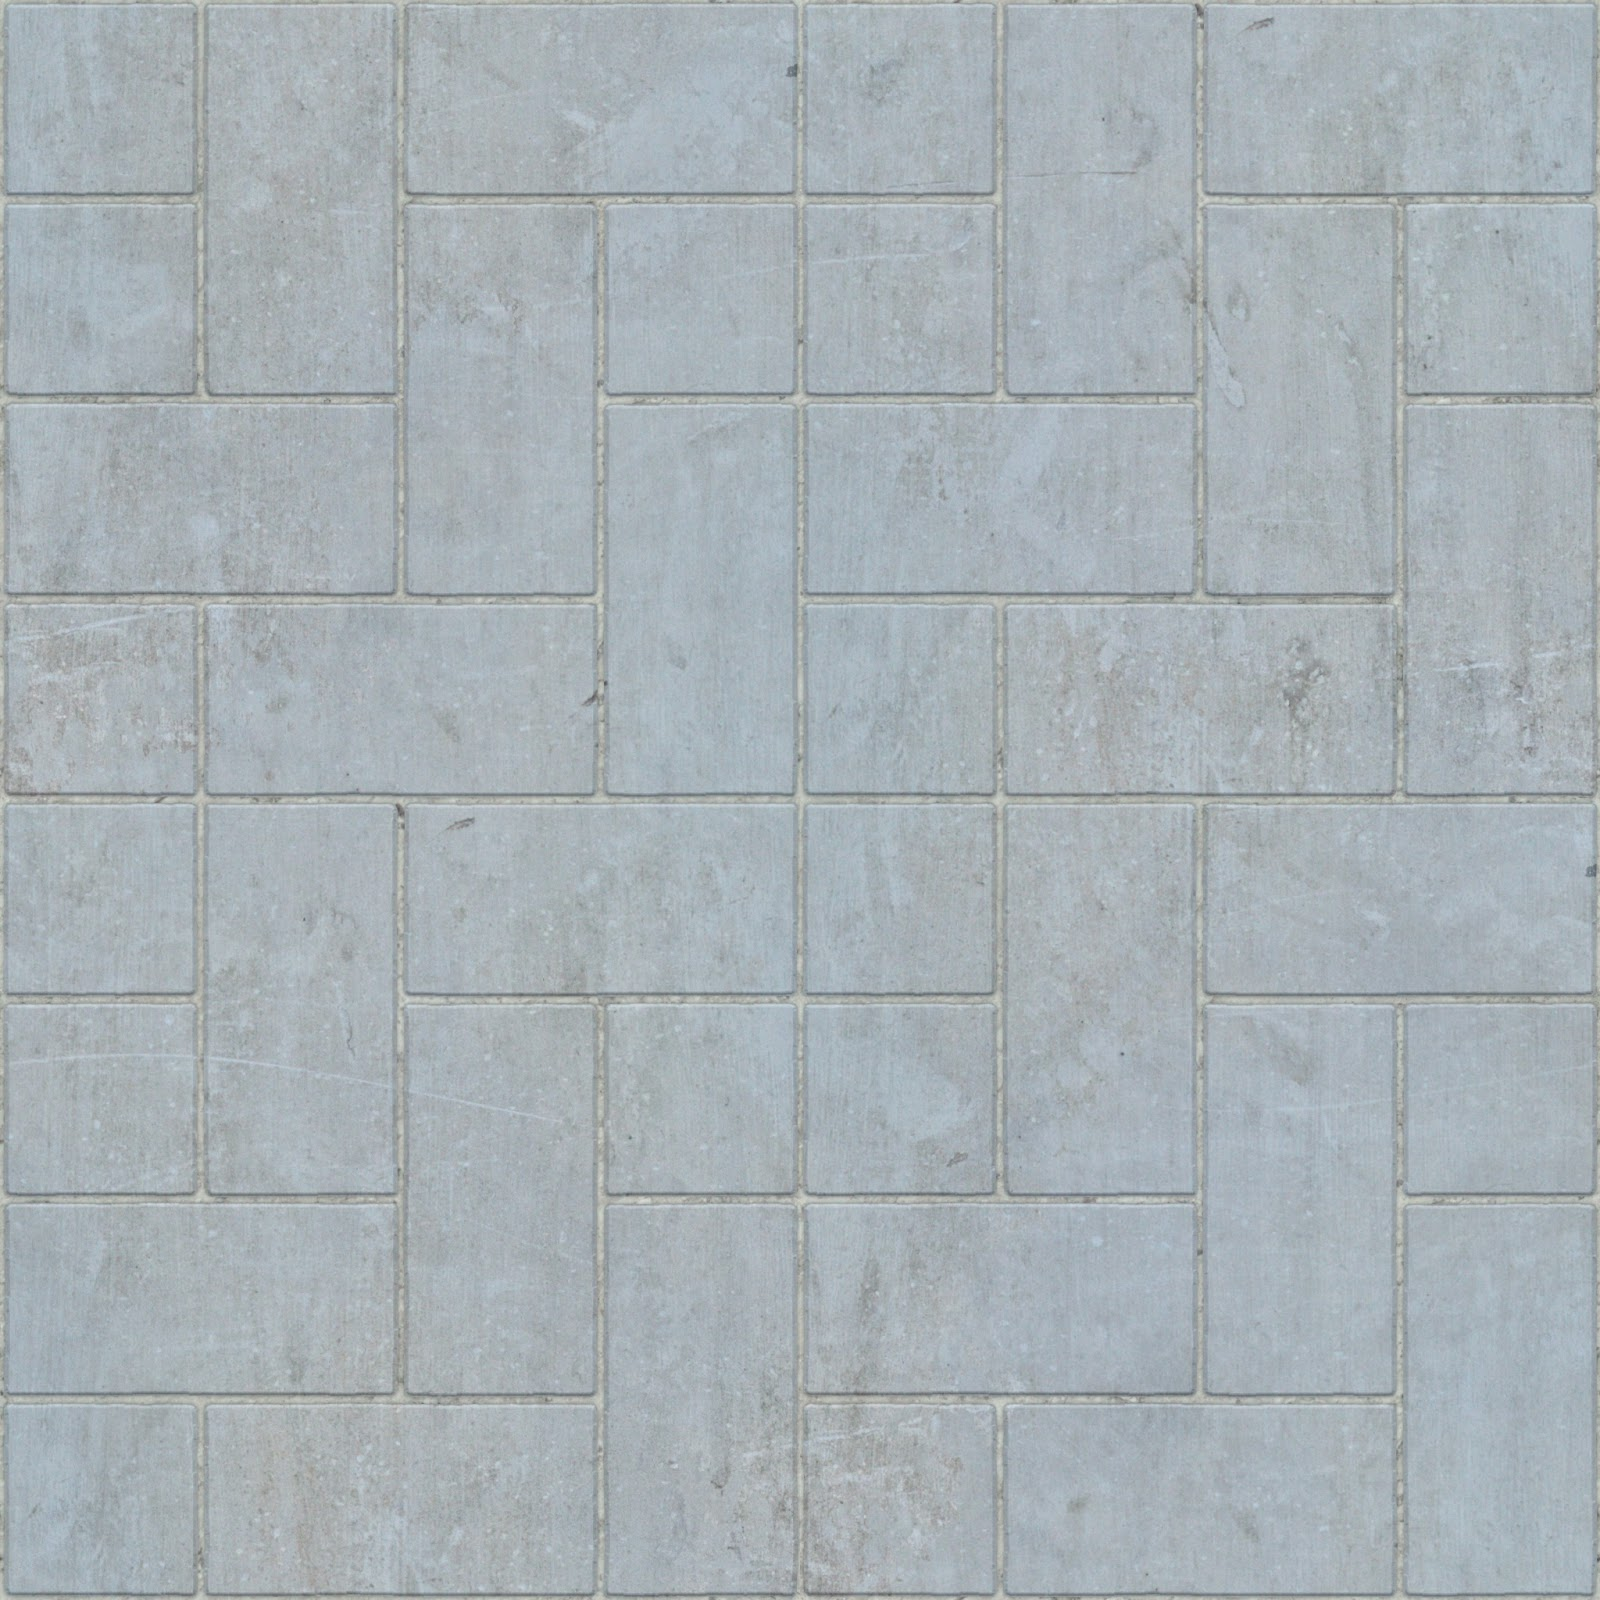 Brick concrete tile floor seamless texture 2048x2048